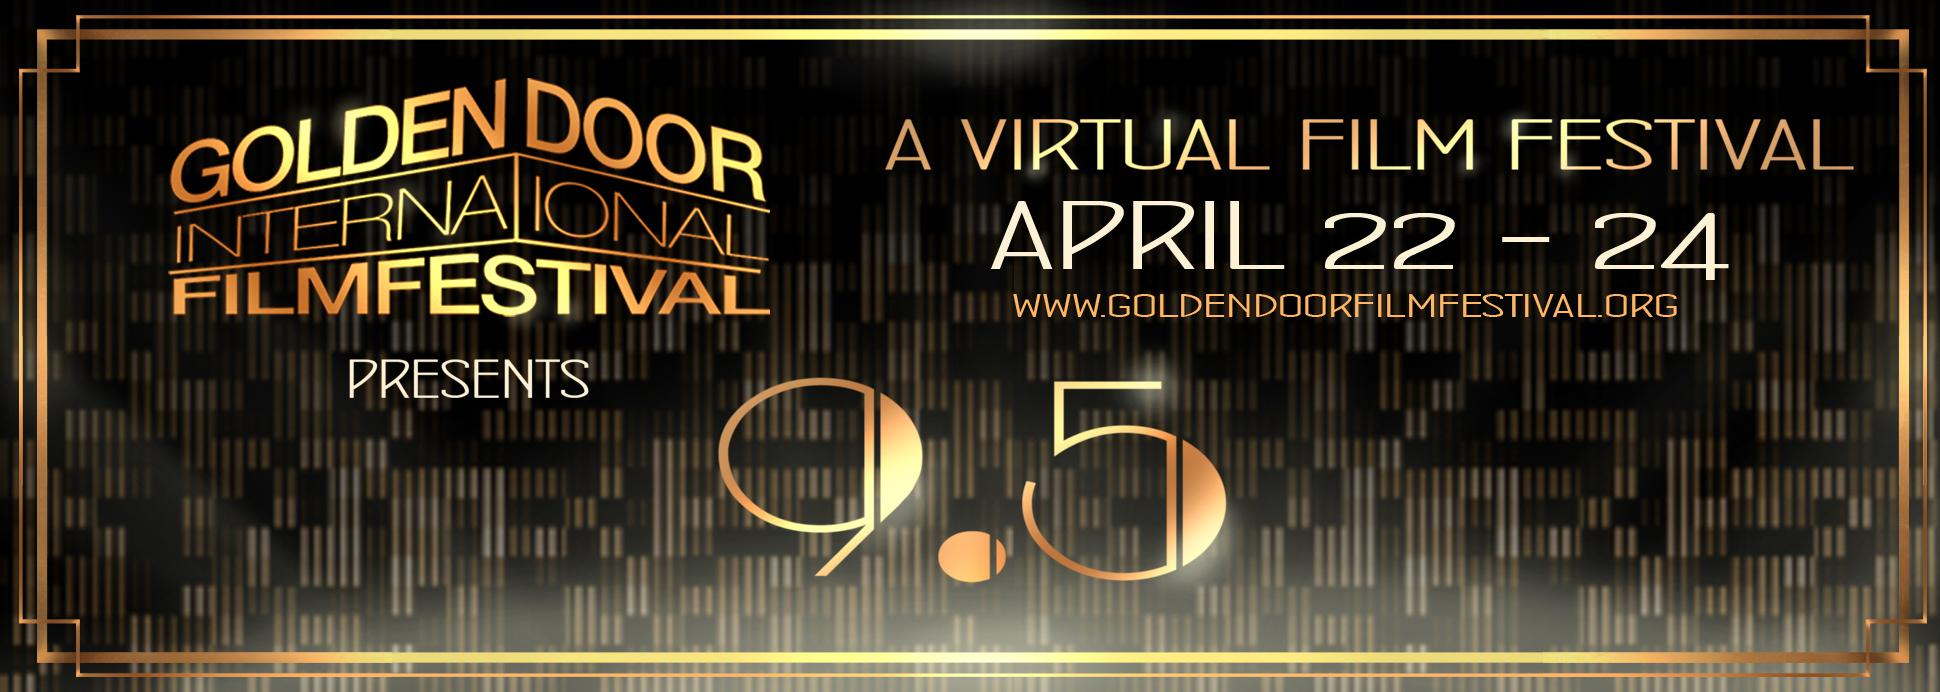 Golden Door Film Festival 2021